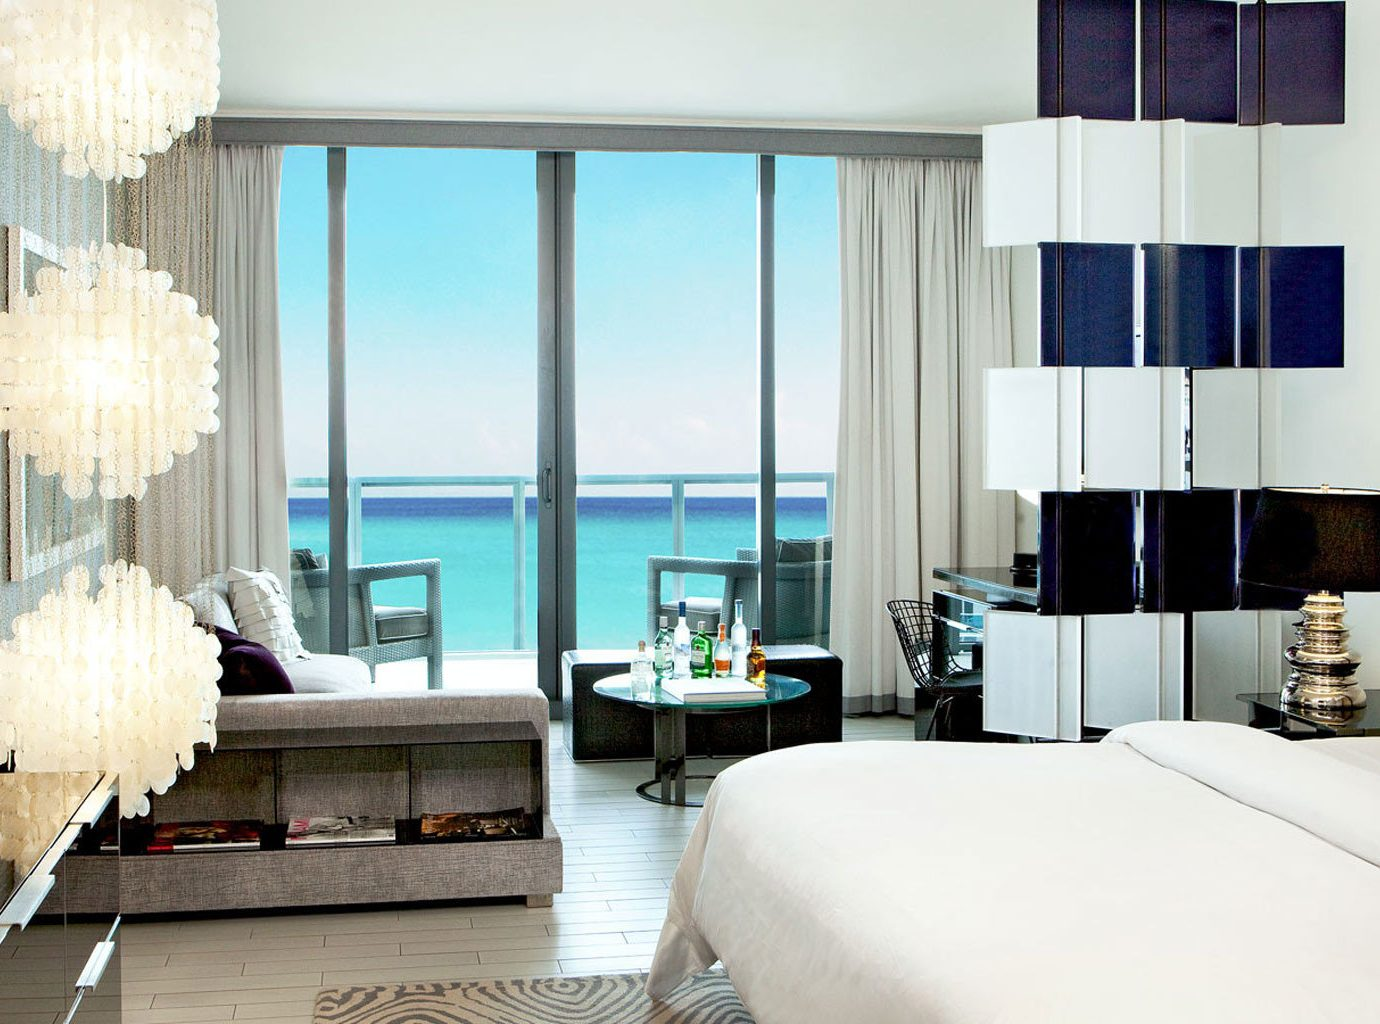 Beach bed Bedroom chic clean Hotels interior Luxury Ocean ocean view turquoise view indoor wall sofa room property Living Suite condominium interior design living room hotel estate home Design window covering furniture real estate curtain apartment Modern